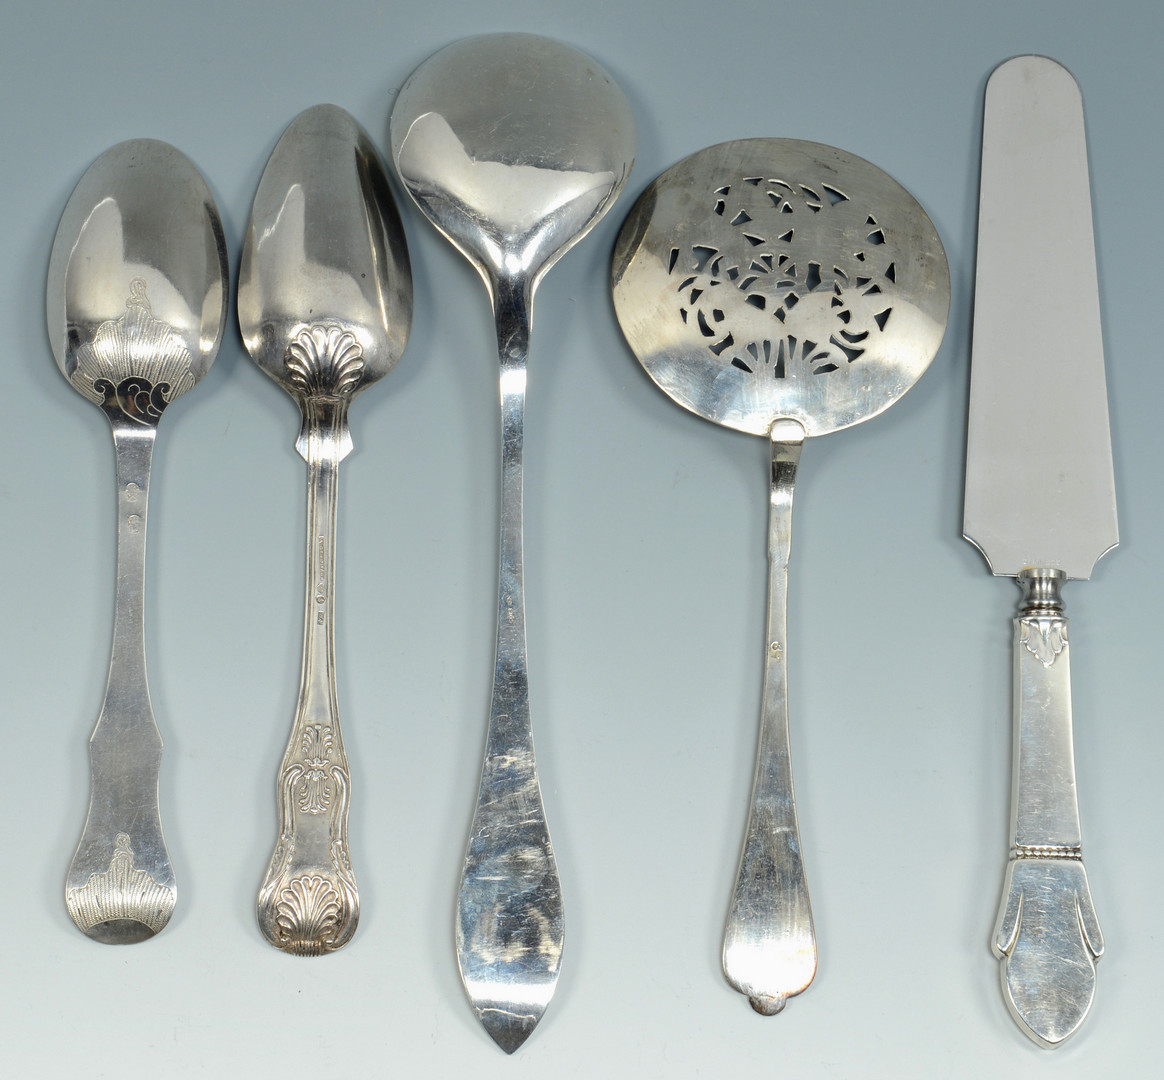 Lot 794: Silver flatware and small bowls, 12 pcs